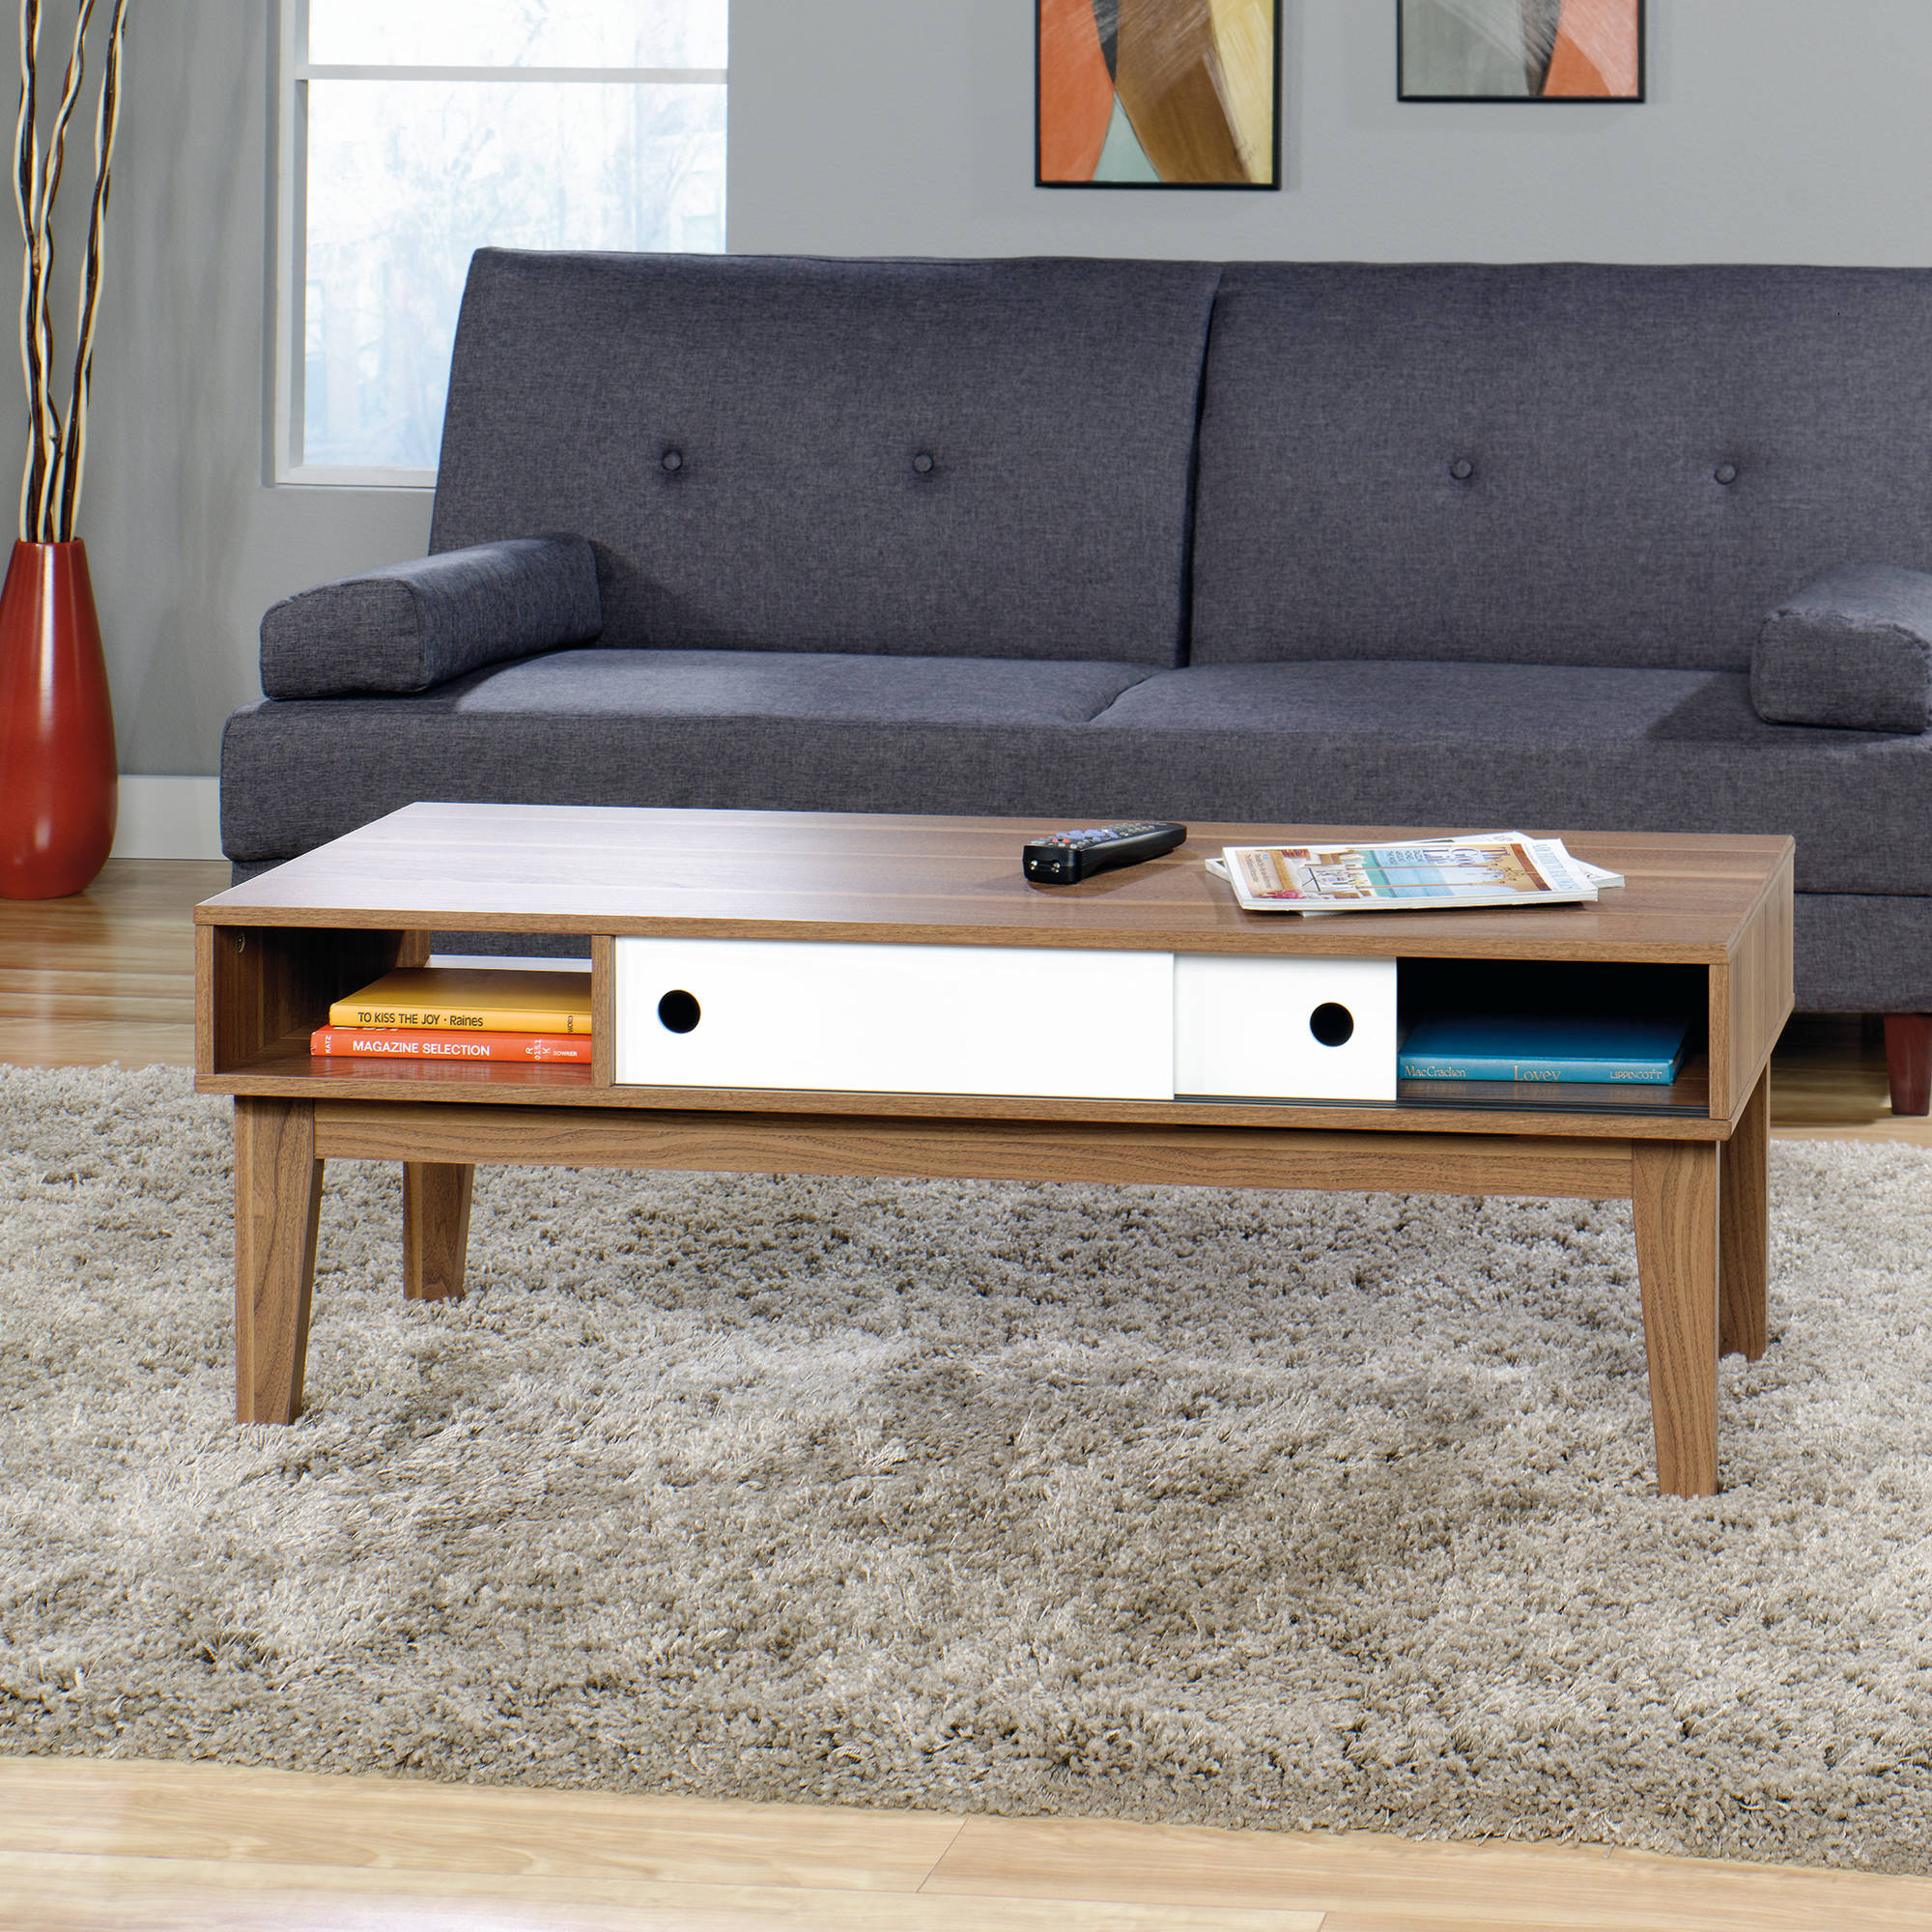 Sauder Soft Modern Coffee Table Walnut Finish With White Accent in sizing 2000 X 2000